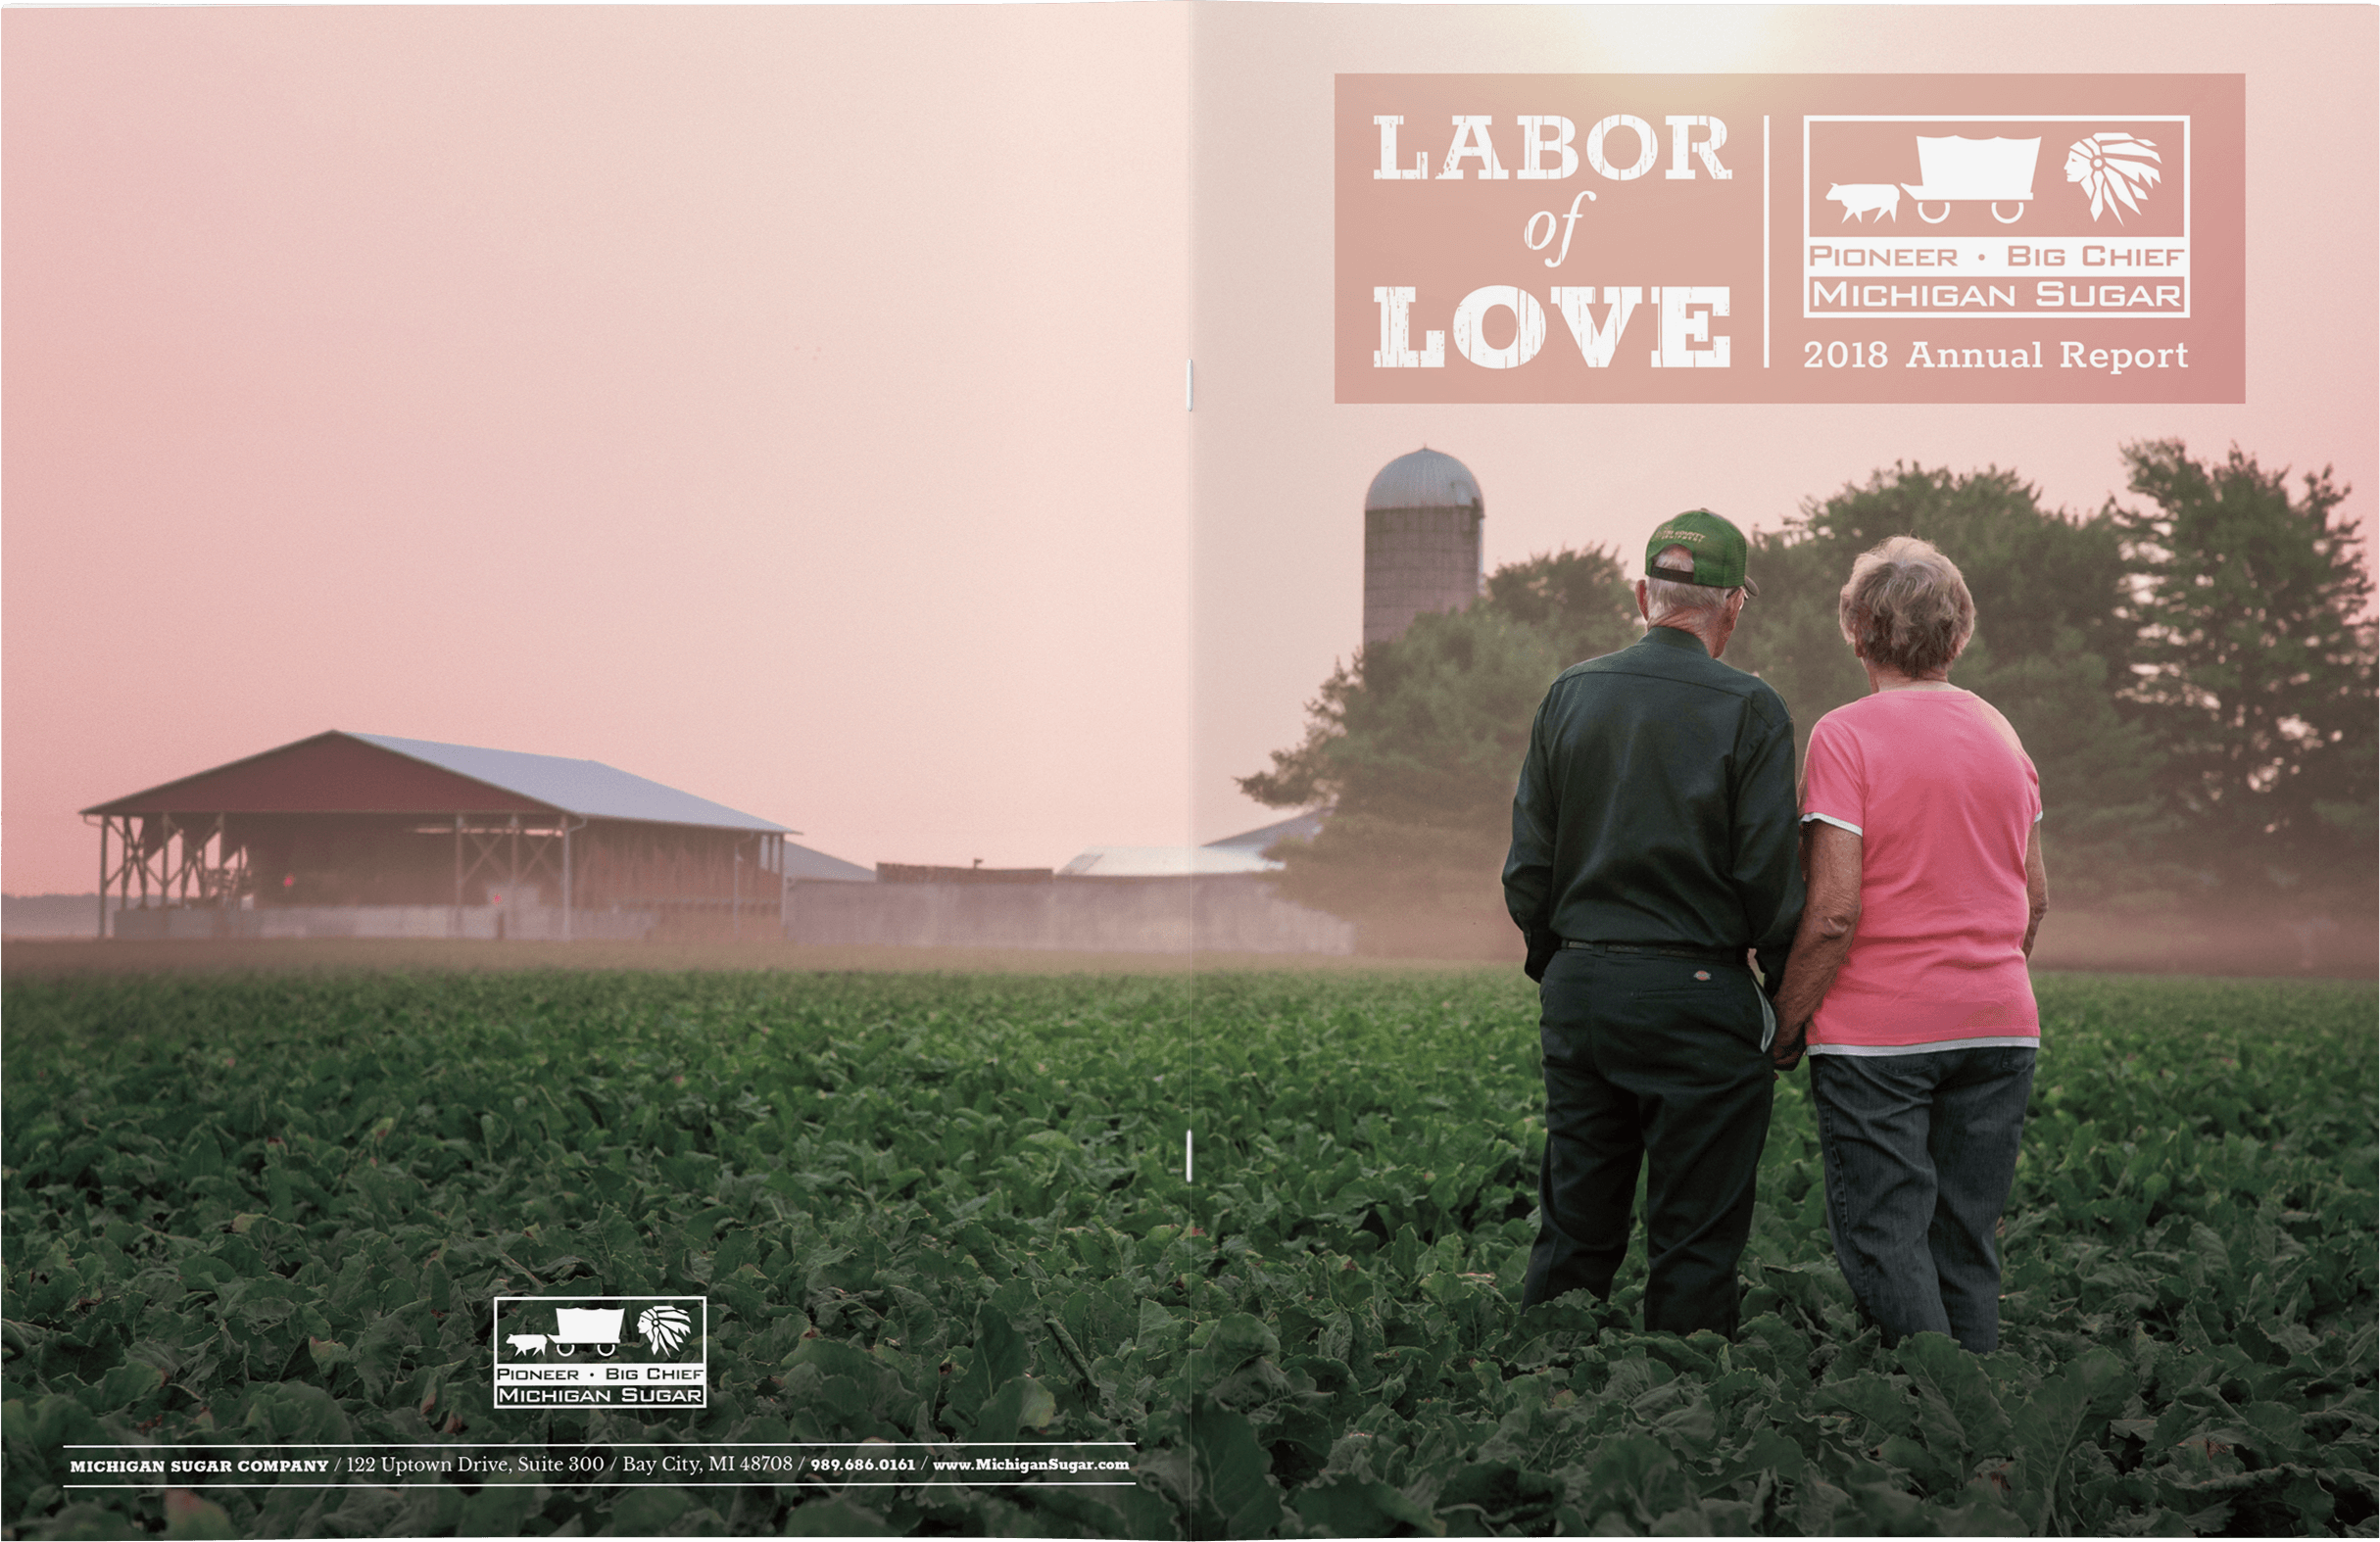 michigan sugar 2018 annual report cover spread